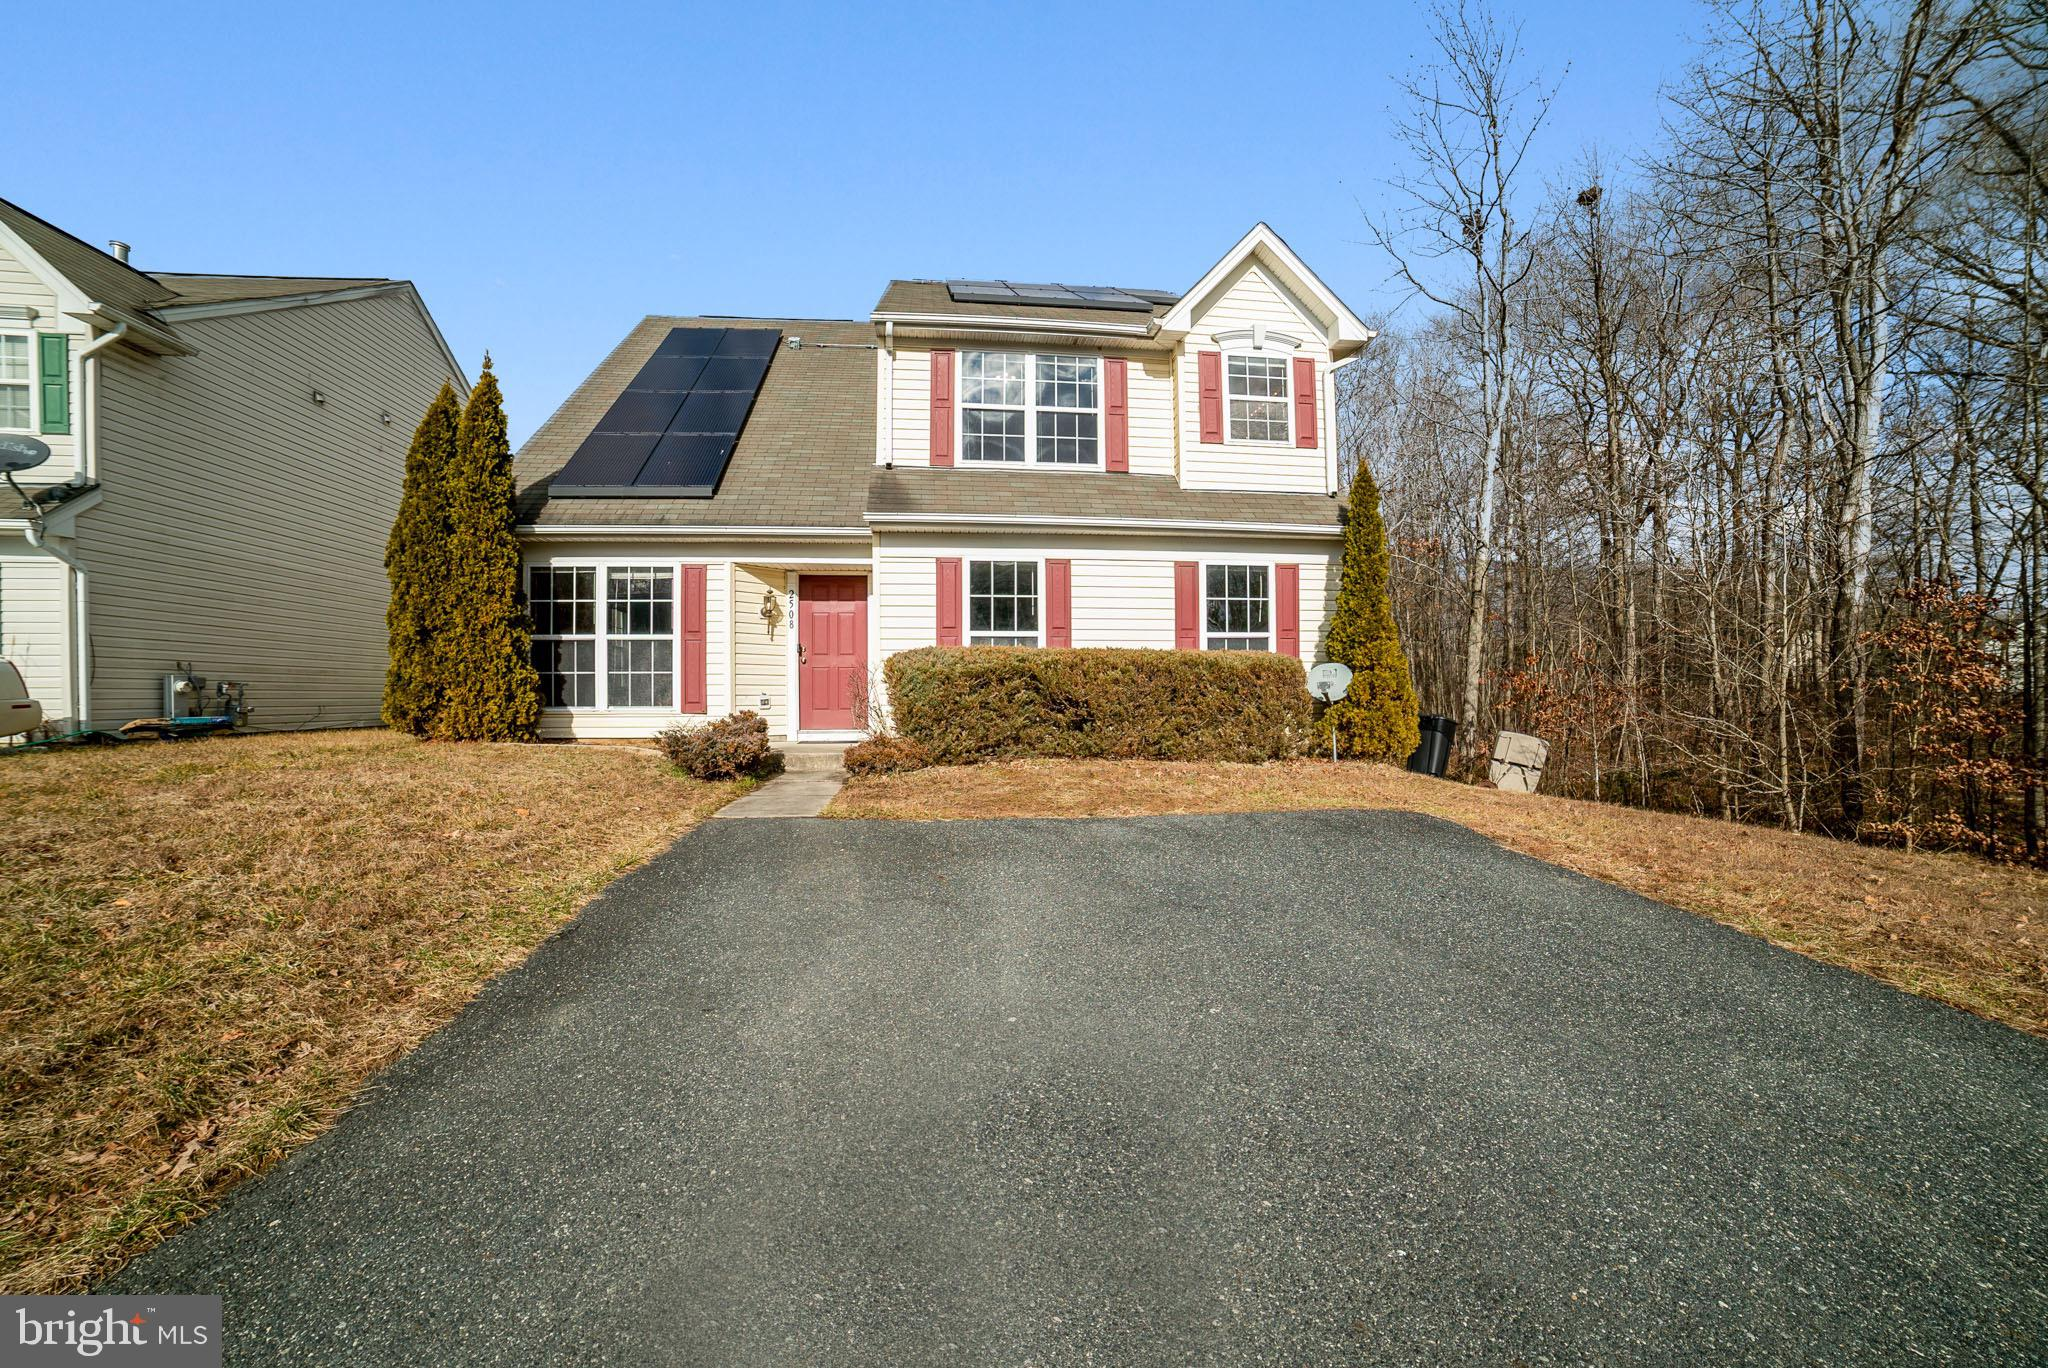 Welcome to 2508 Indians Lair and beautiful 3 bedroom 2.5 bath Colonial home located in Lord Willough